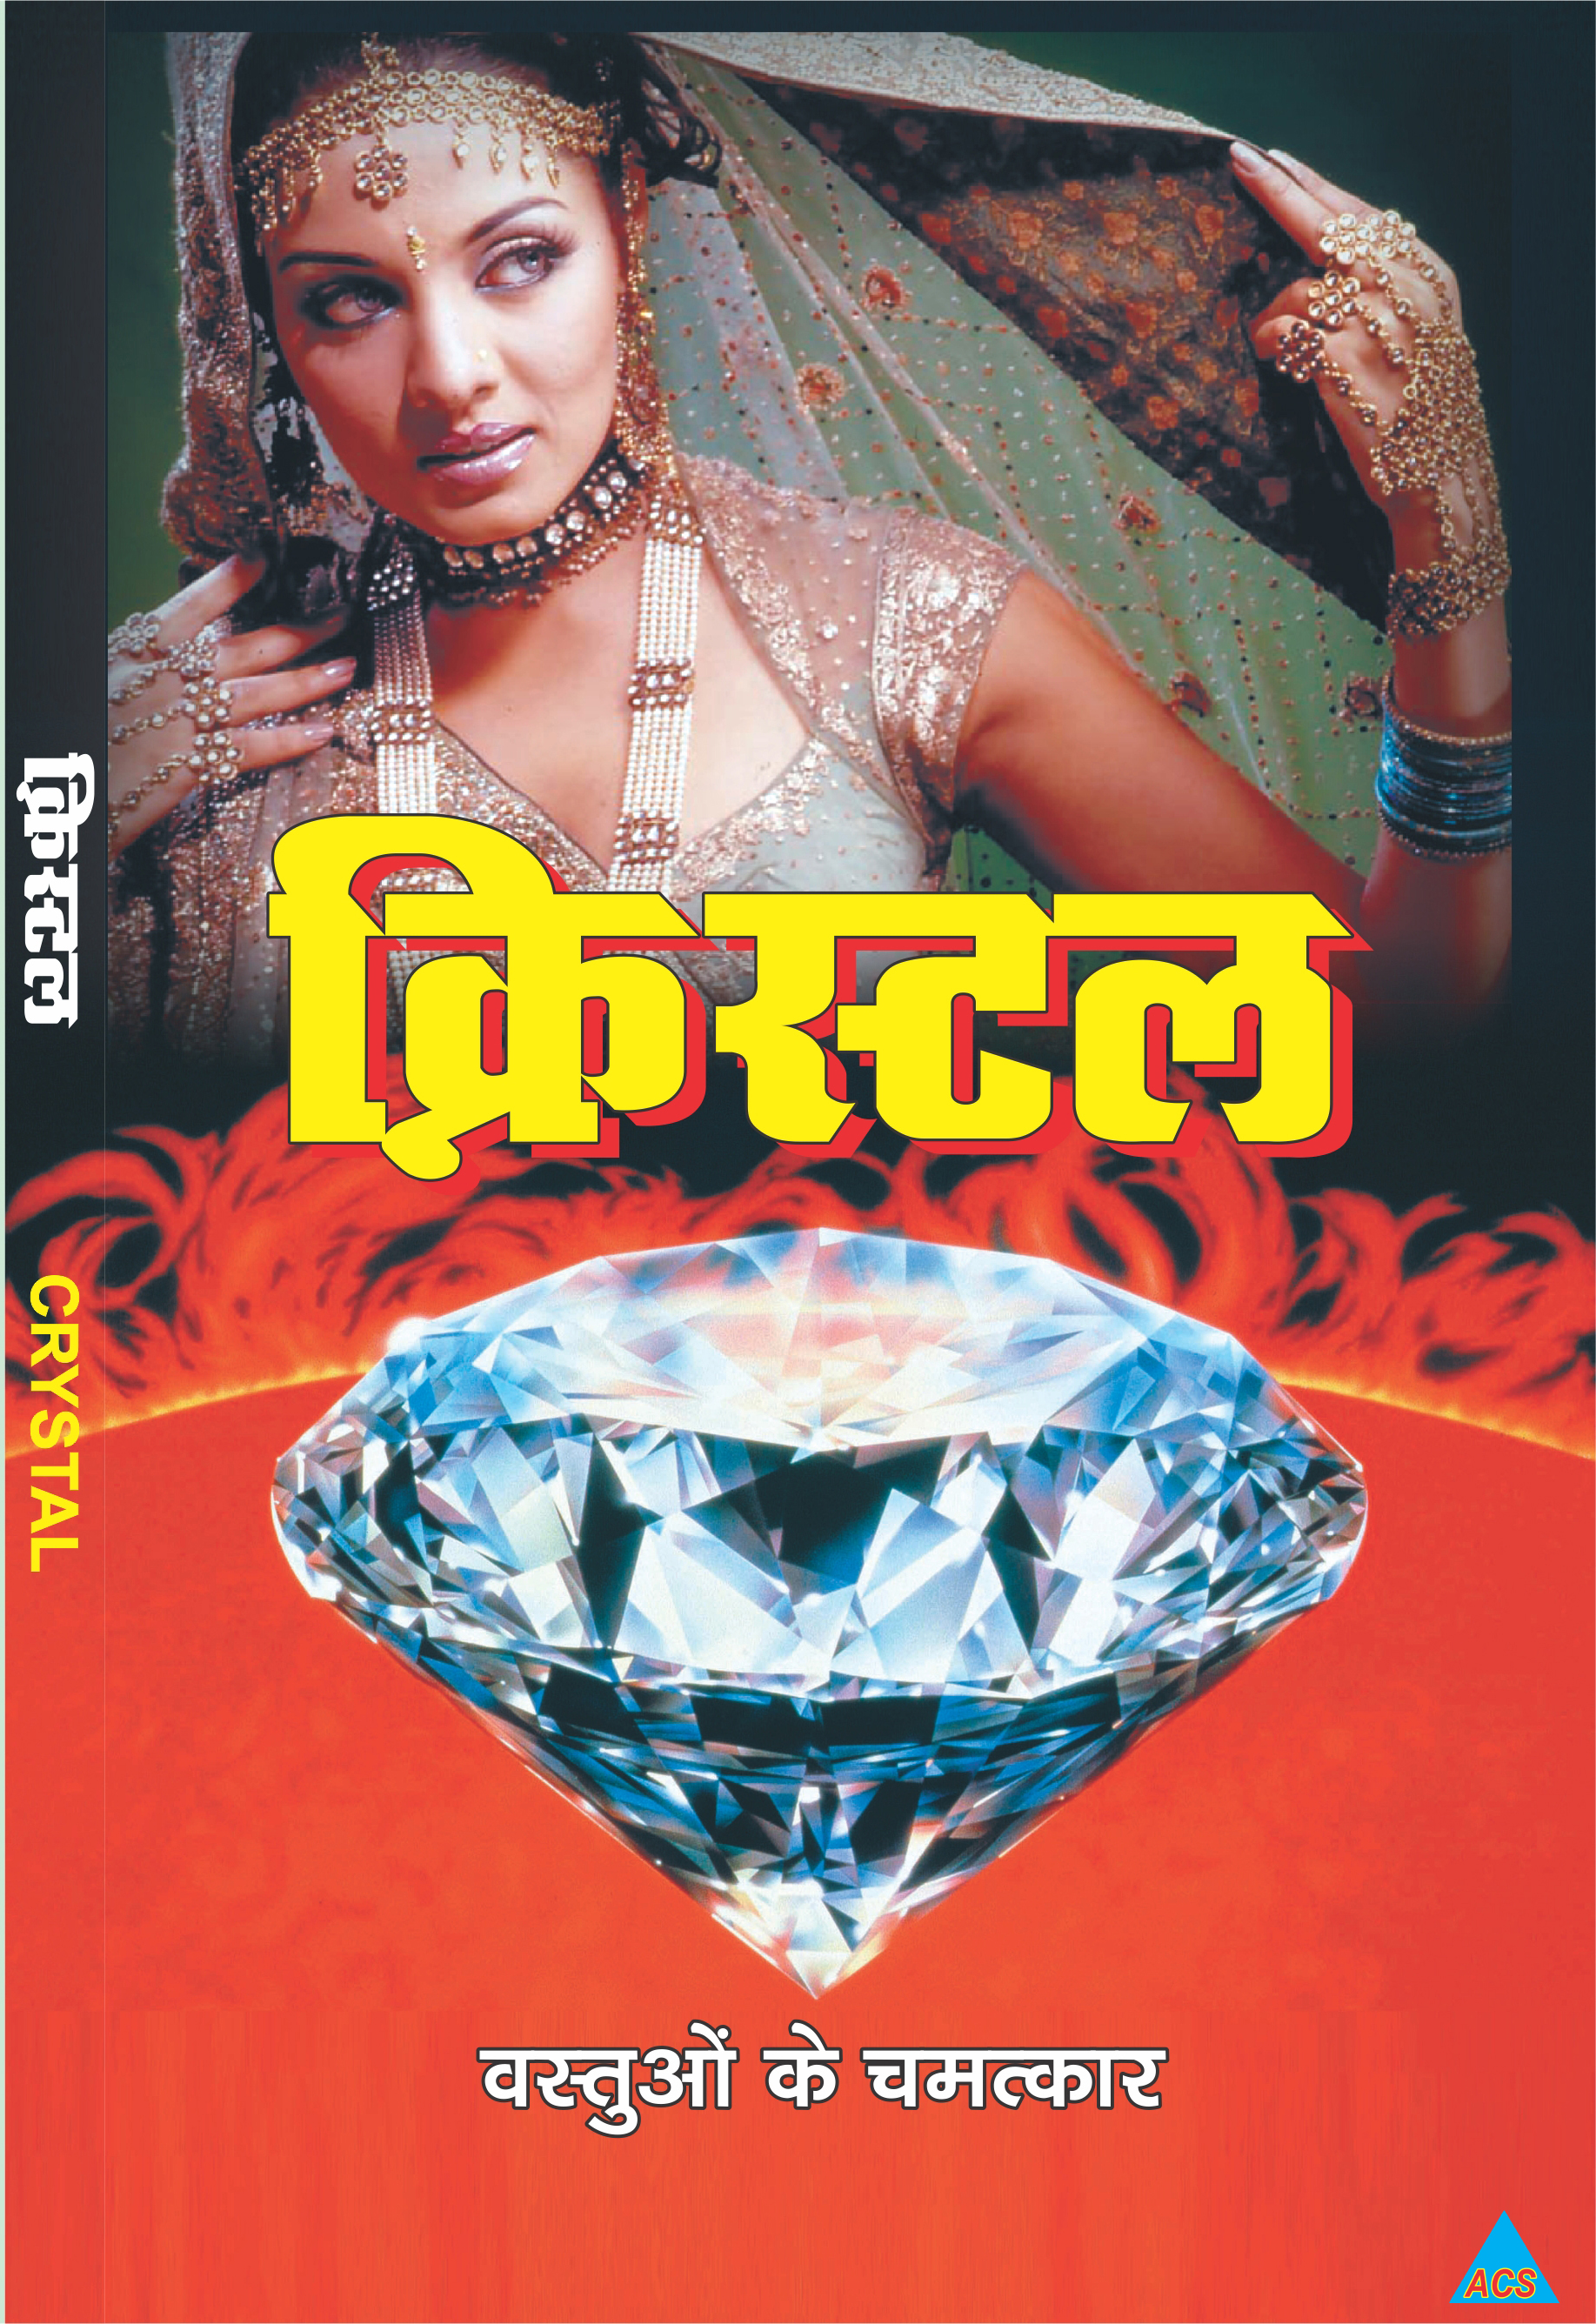 Crystal Joshi & Choudhary - Hindi  - 571